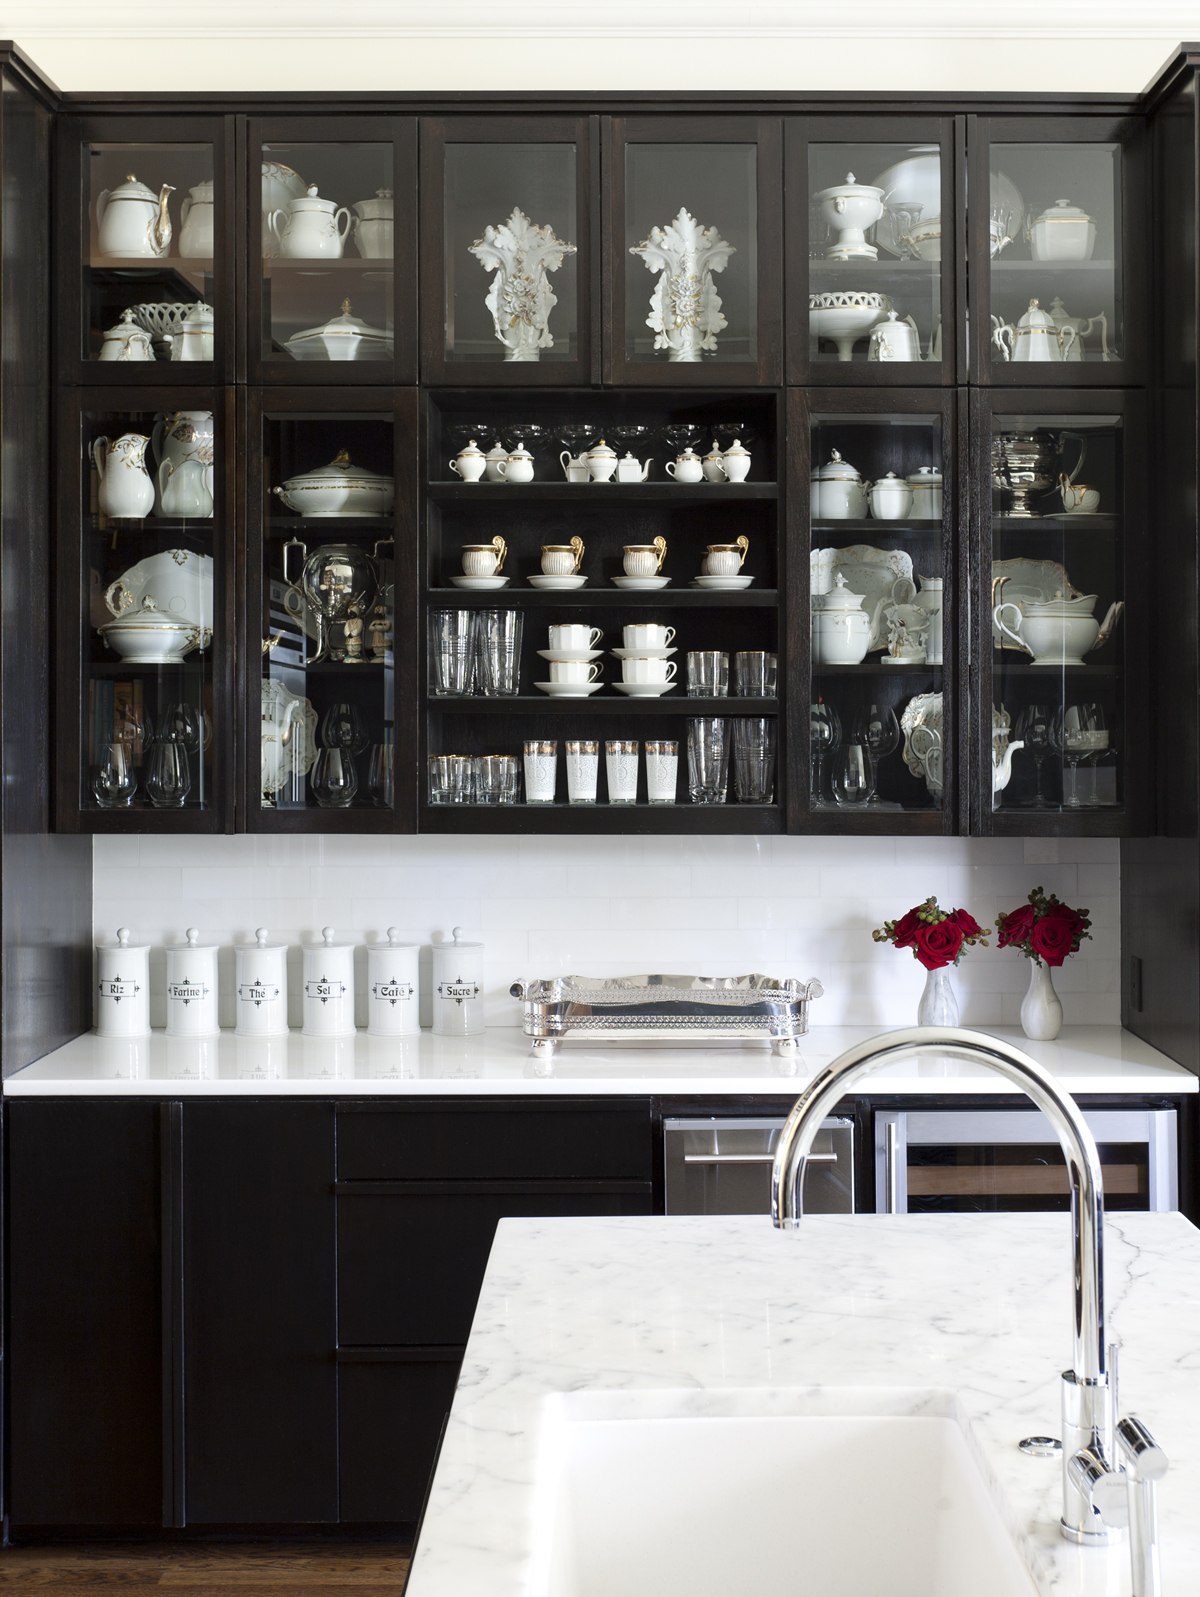 Bye bye white hello dark kitchen cabinets nbaynadamas for Images of black kitchen cabinets